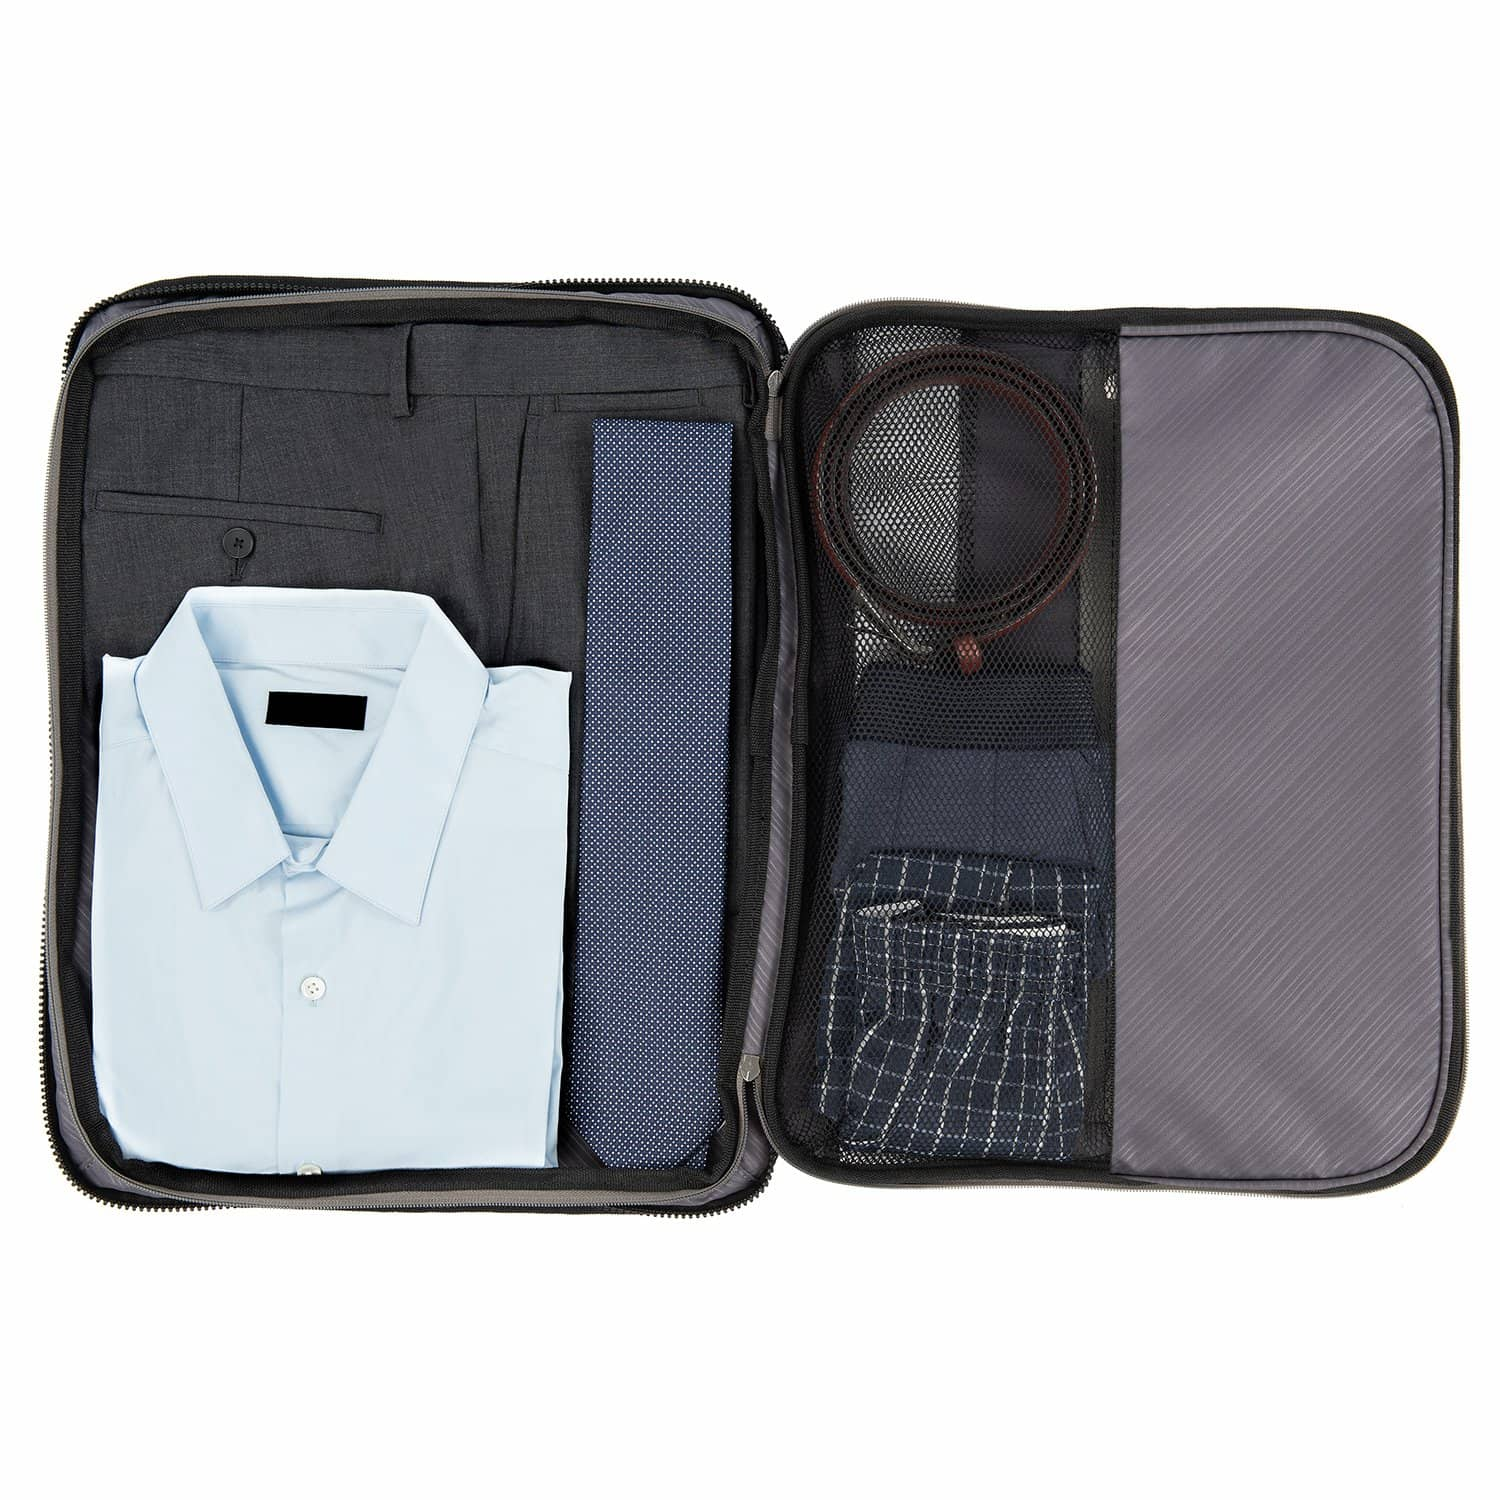 Crew™ VersaPack™ All-In-One Organizer (Max Size Compatible)